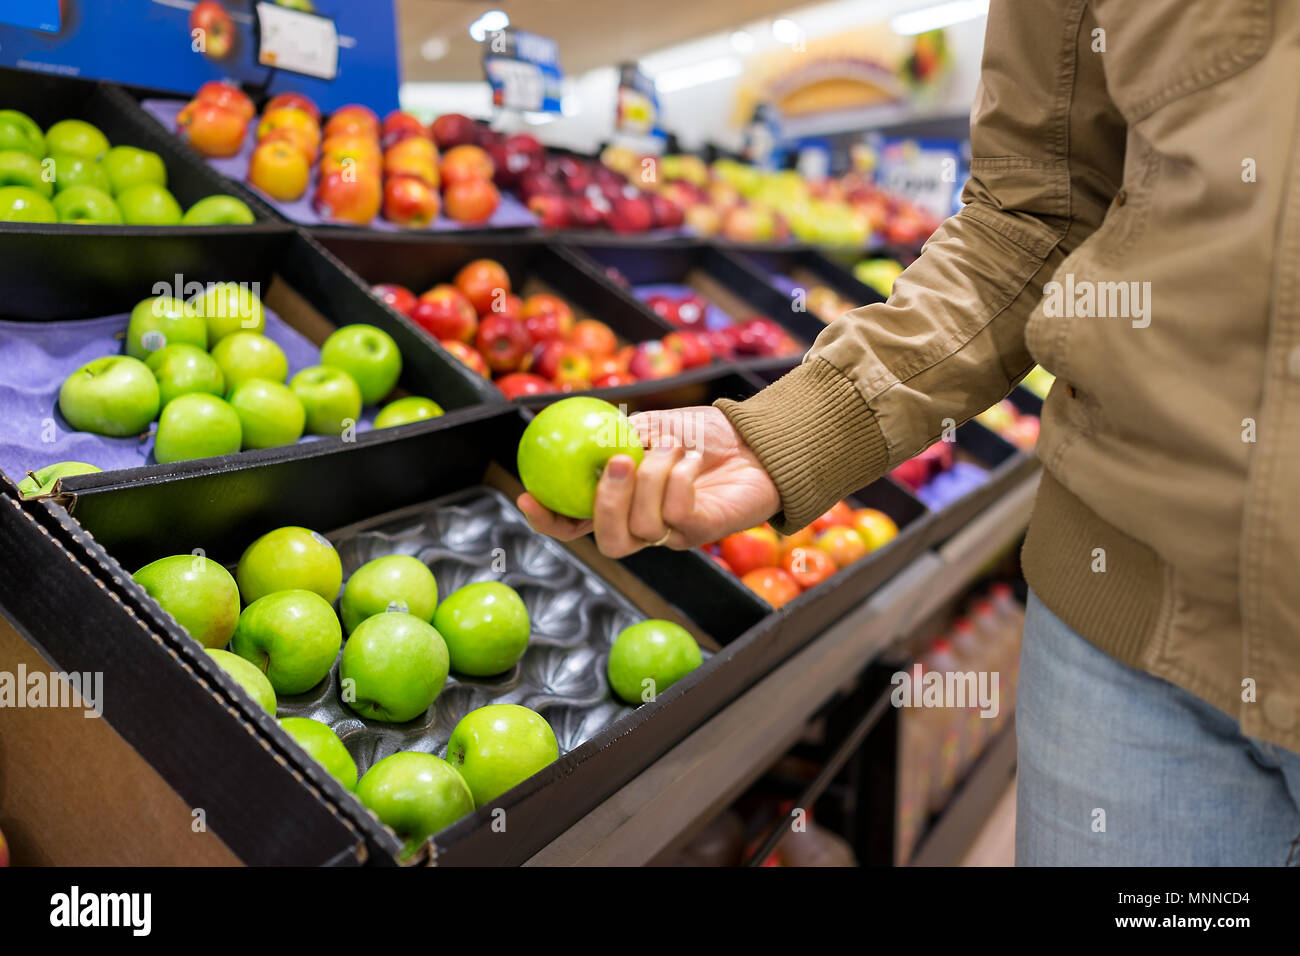 Many varieties assorted apples on display shelf in grocery store boxes in aisle, supermarket inside, man person customer holding granny smith green fr - Stock Image